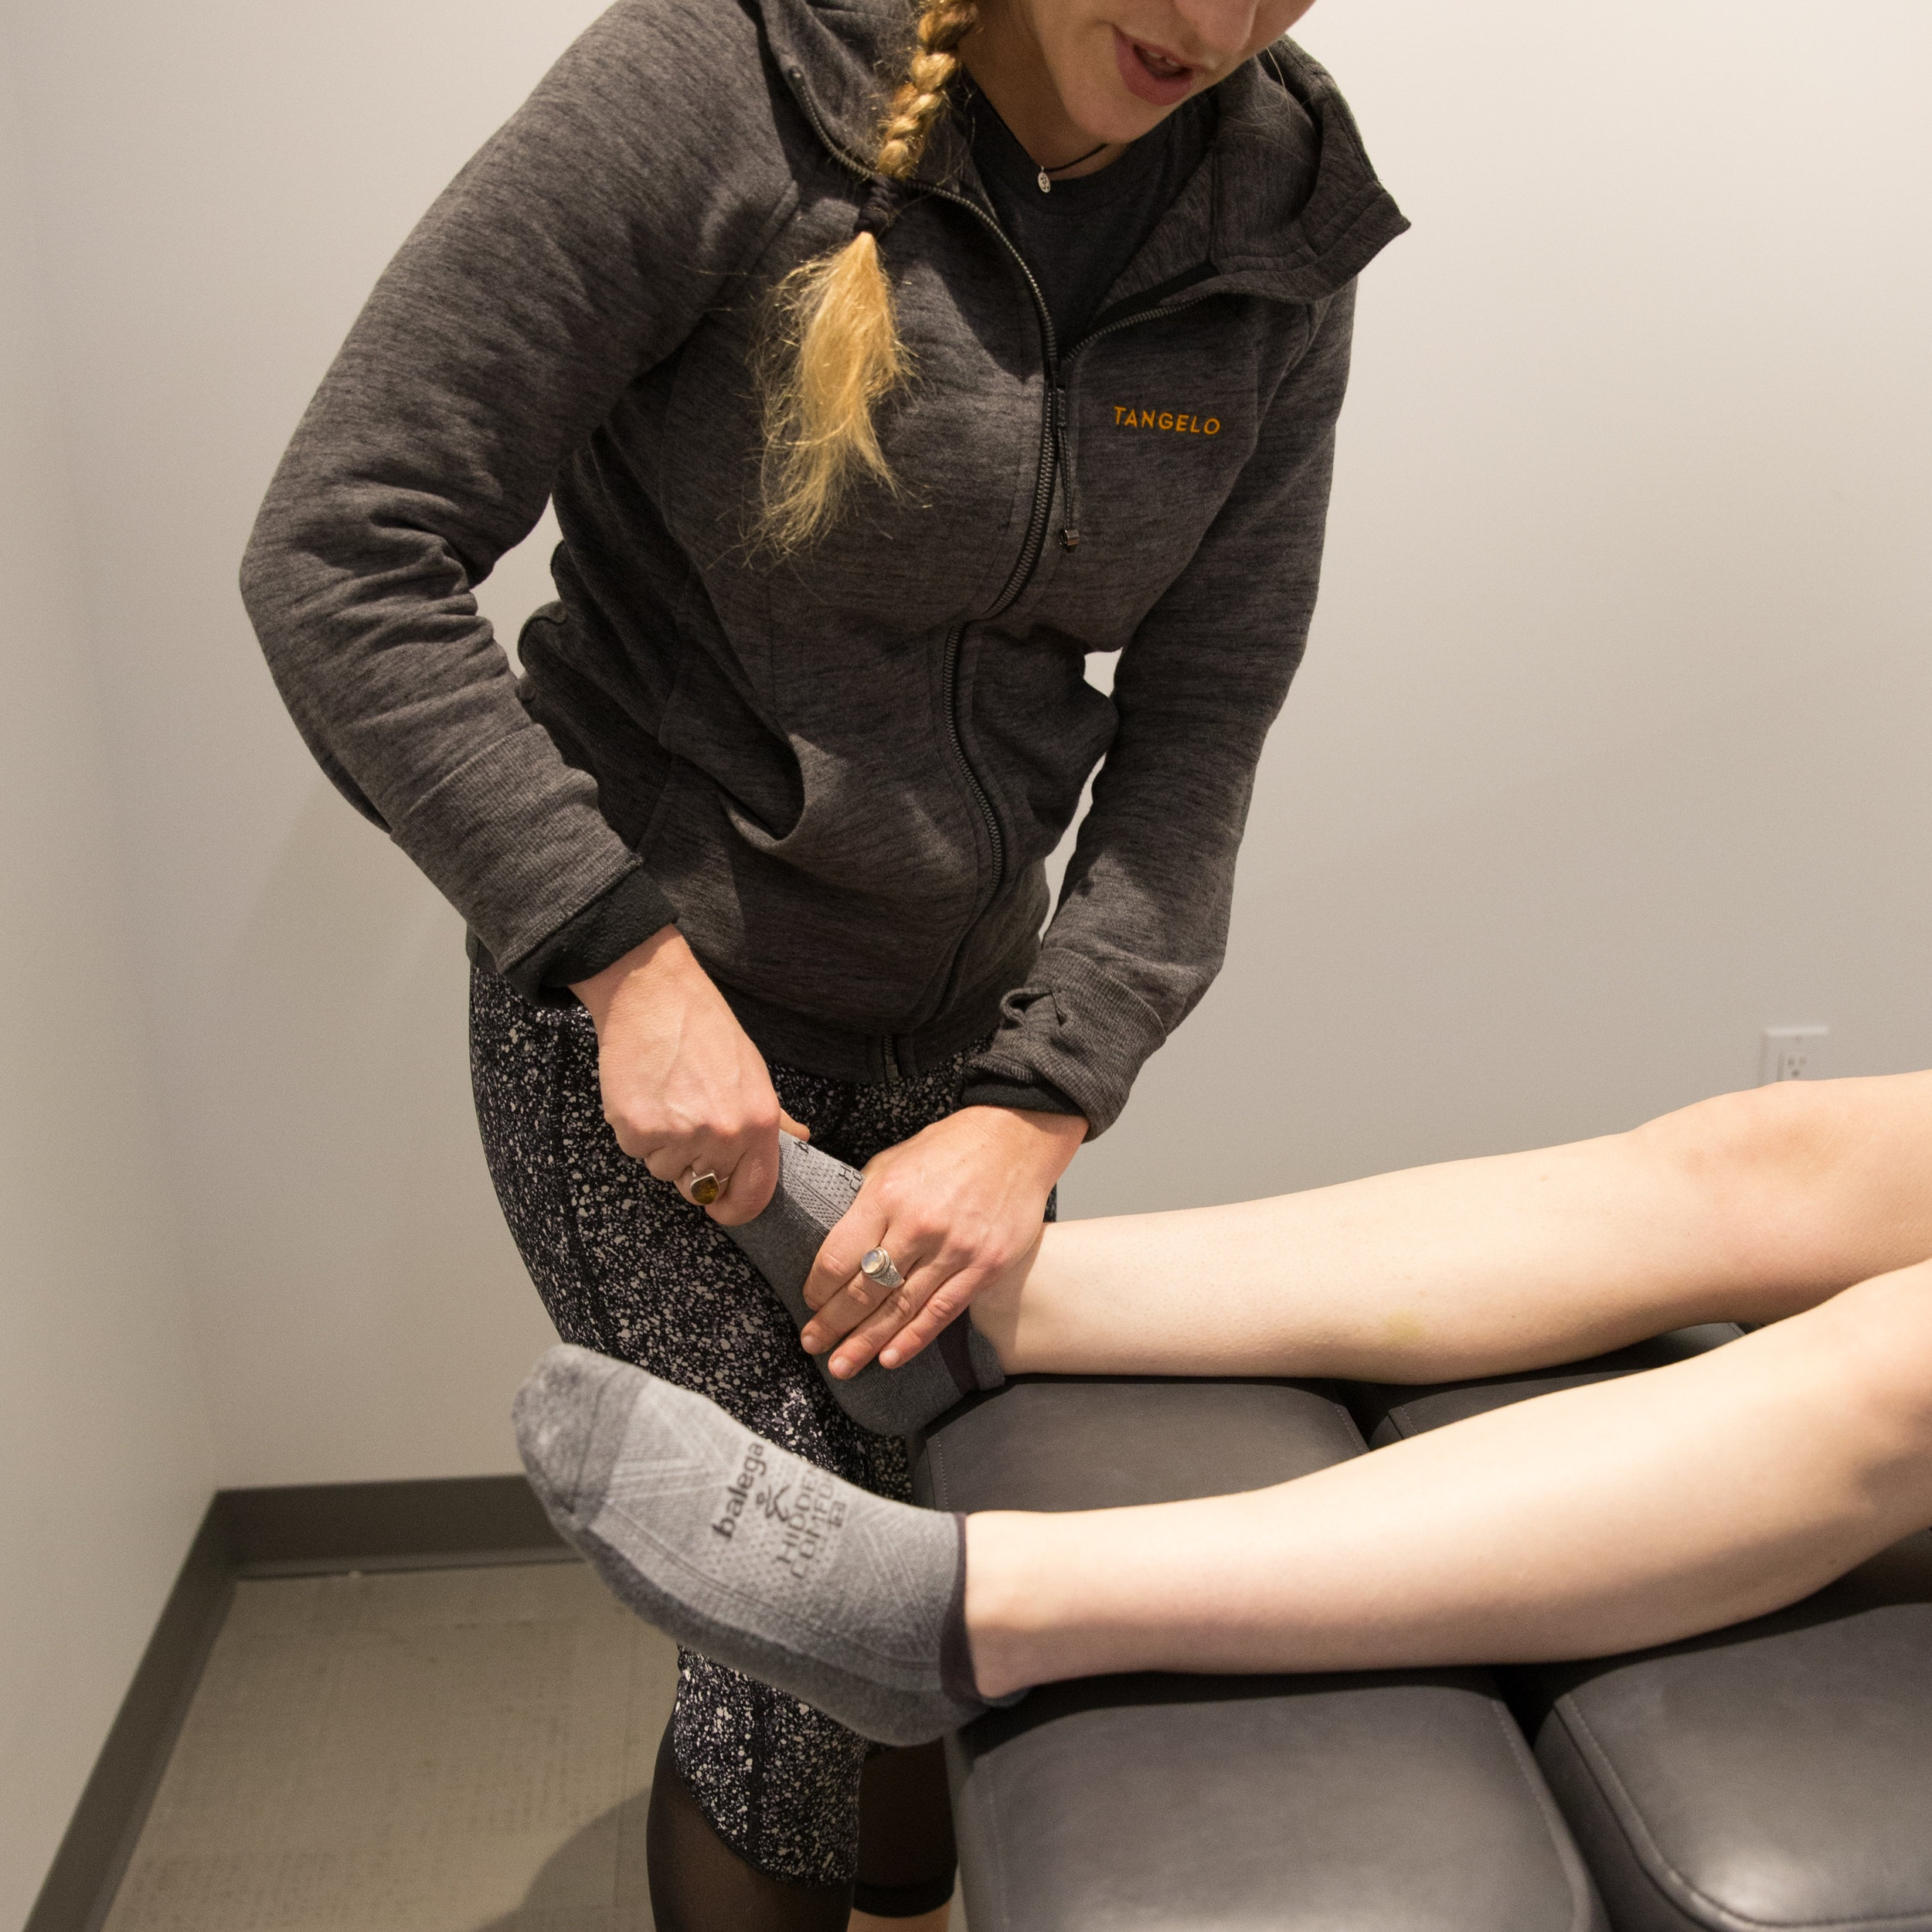 Chiro + Manual Therapy in West Seattle